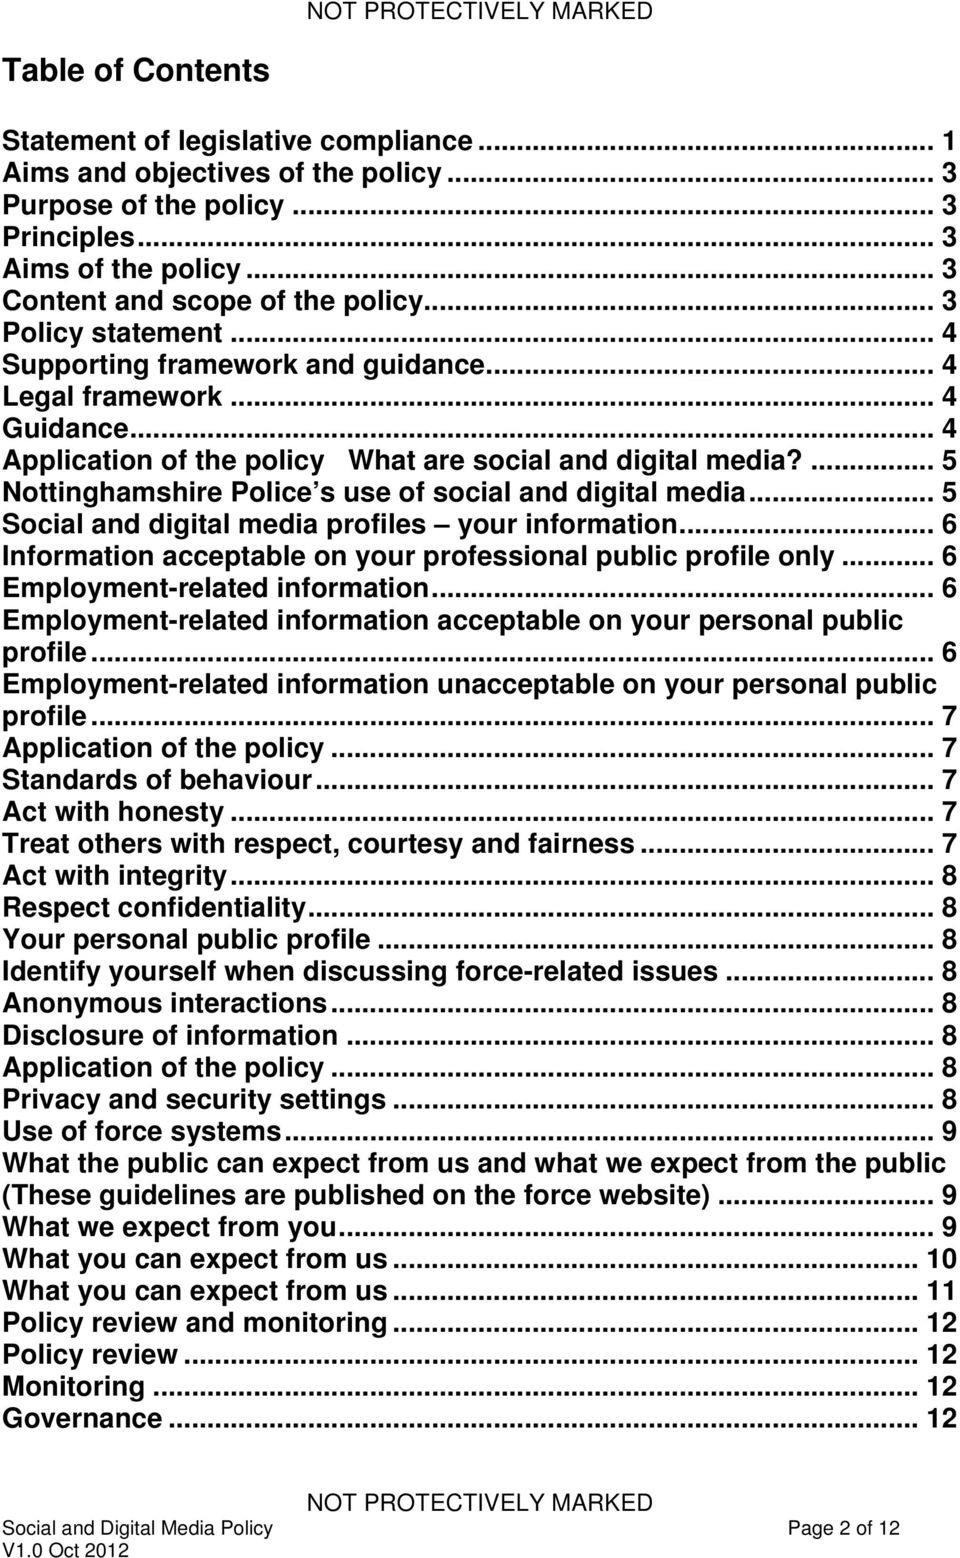 ... 5 Nottinghamshire Police s use of social and digital media... 5 Social and digital media profiles your information... 6 Information acceptable on your professional public profile only.